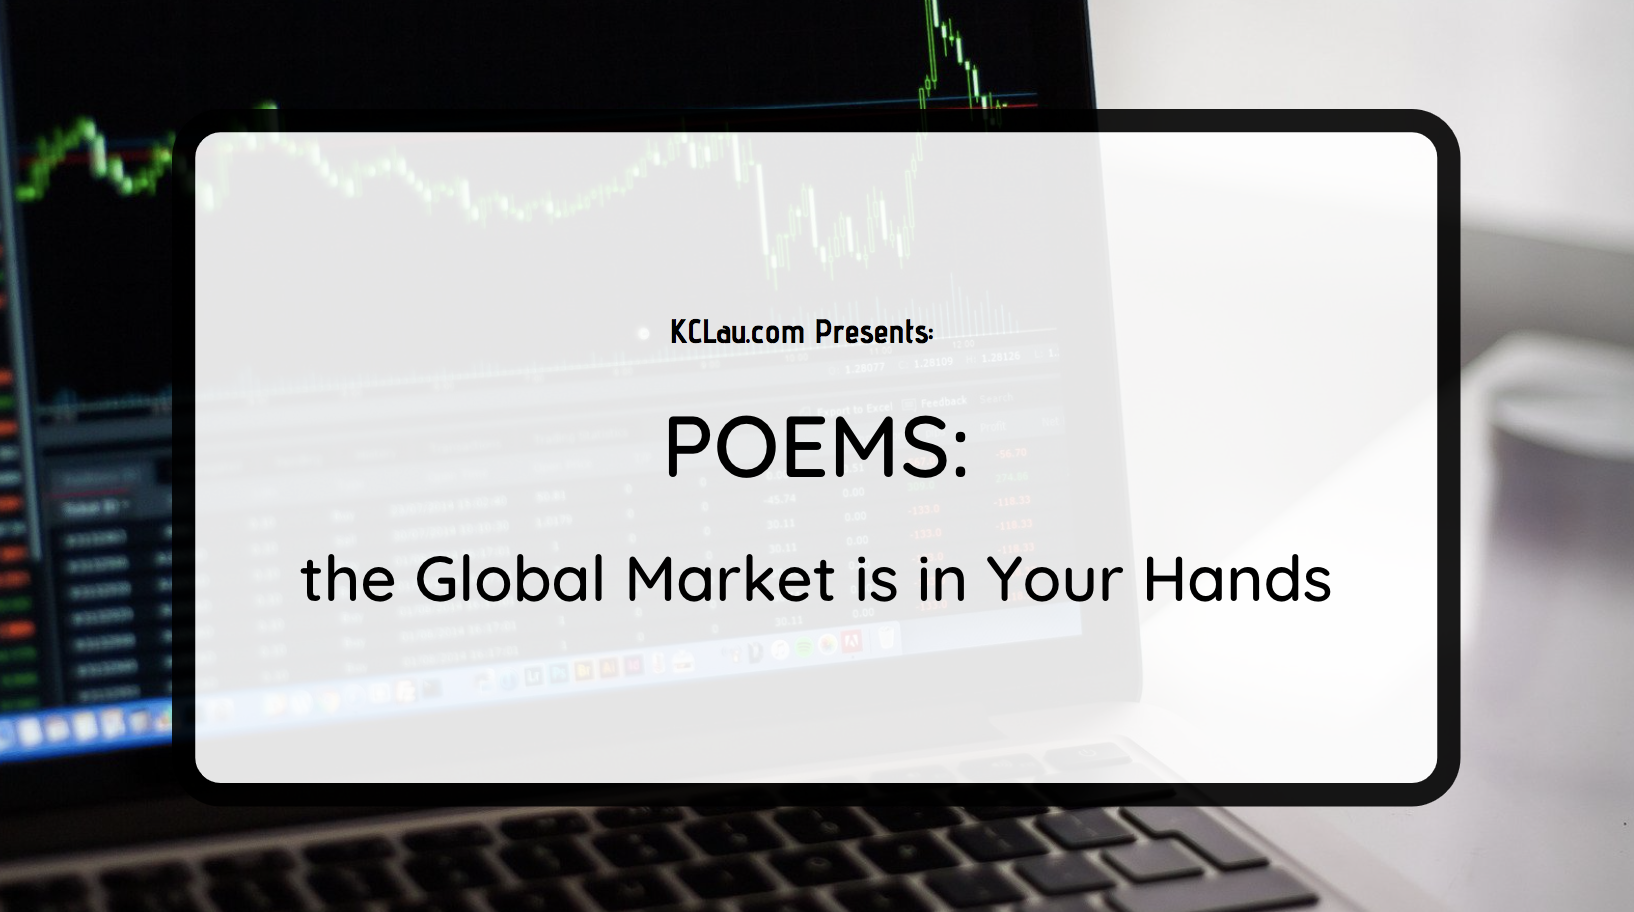 POEMS, the Global Market is in Your Hands